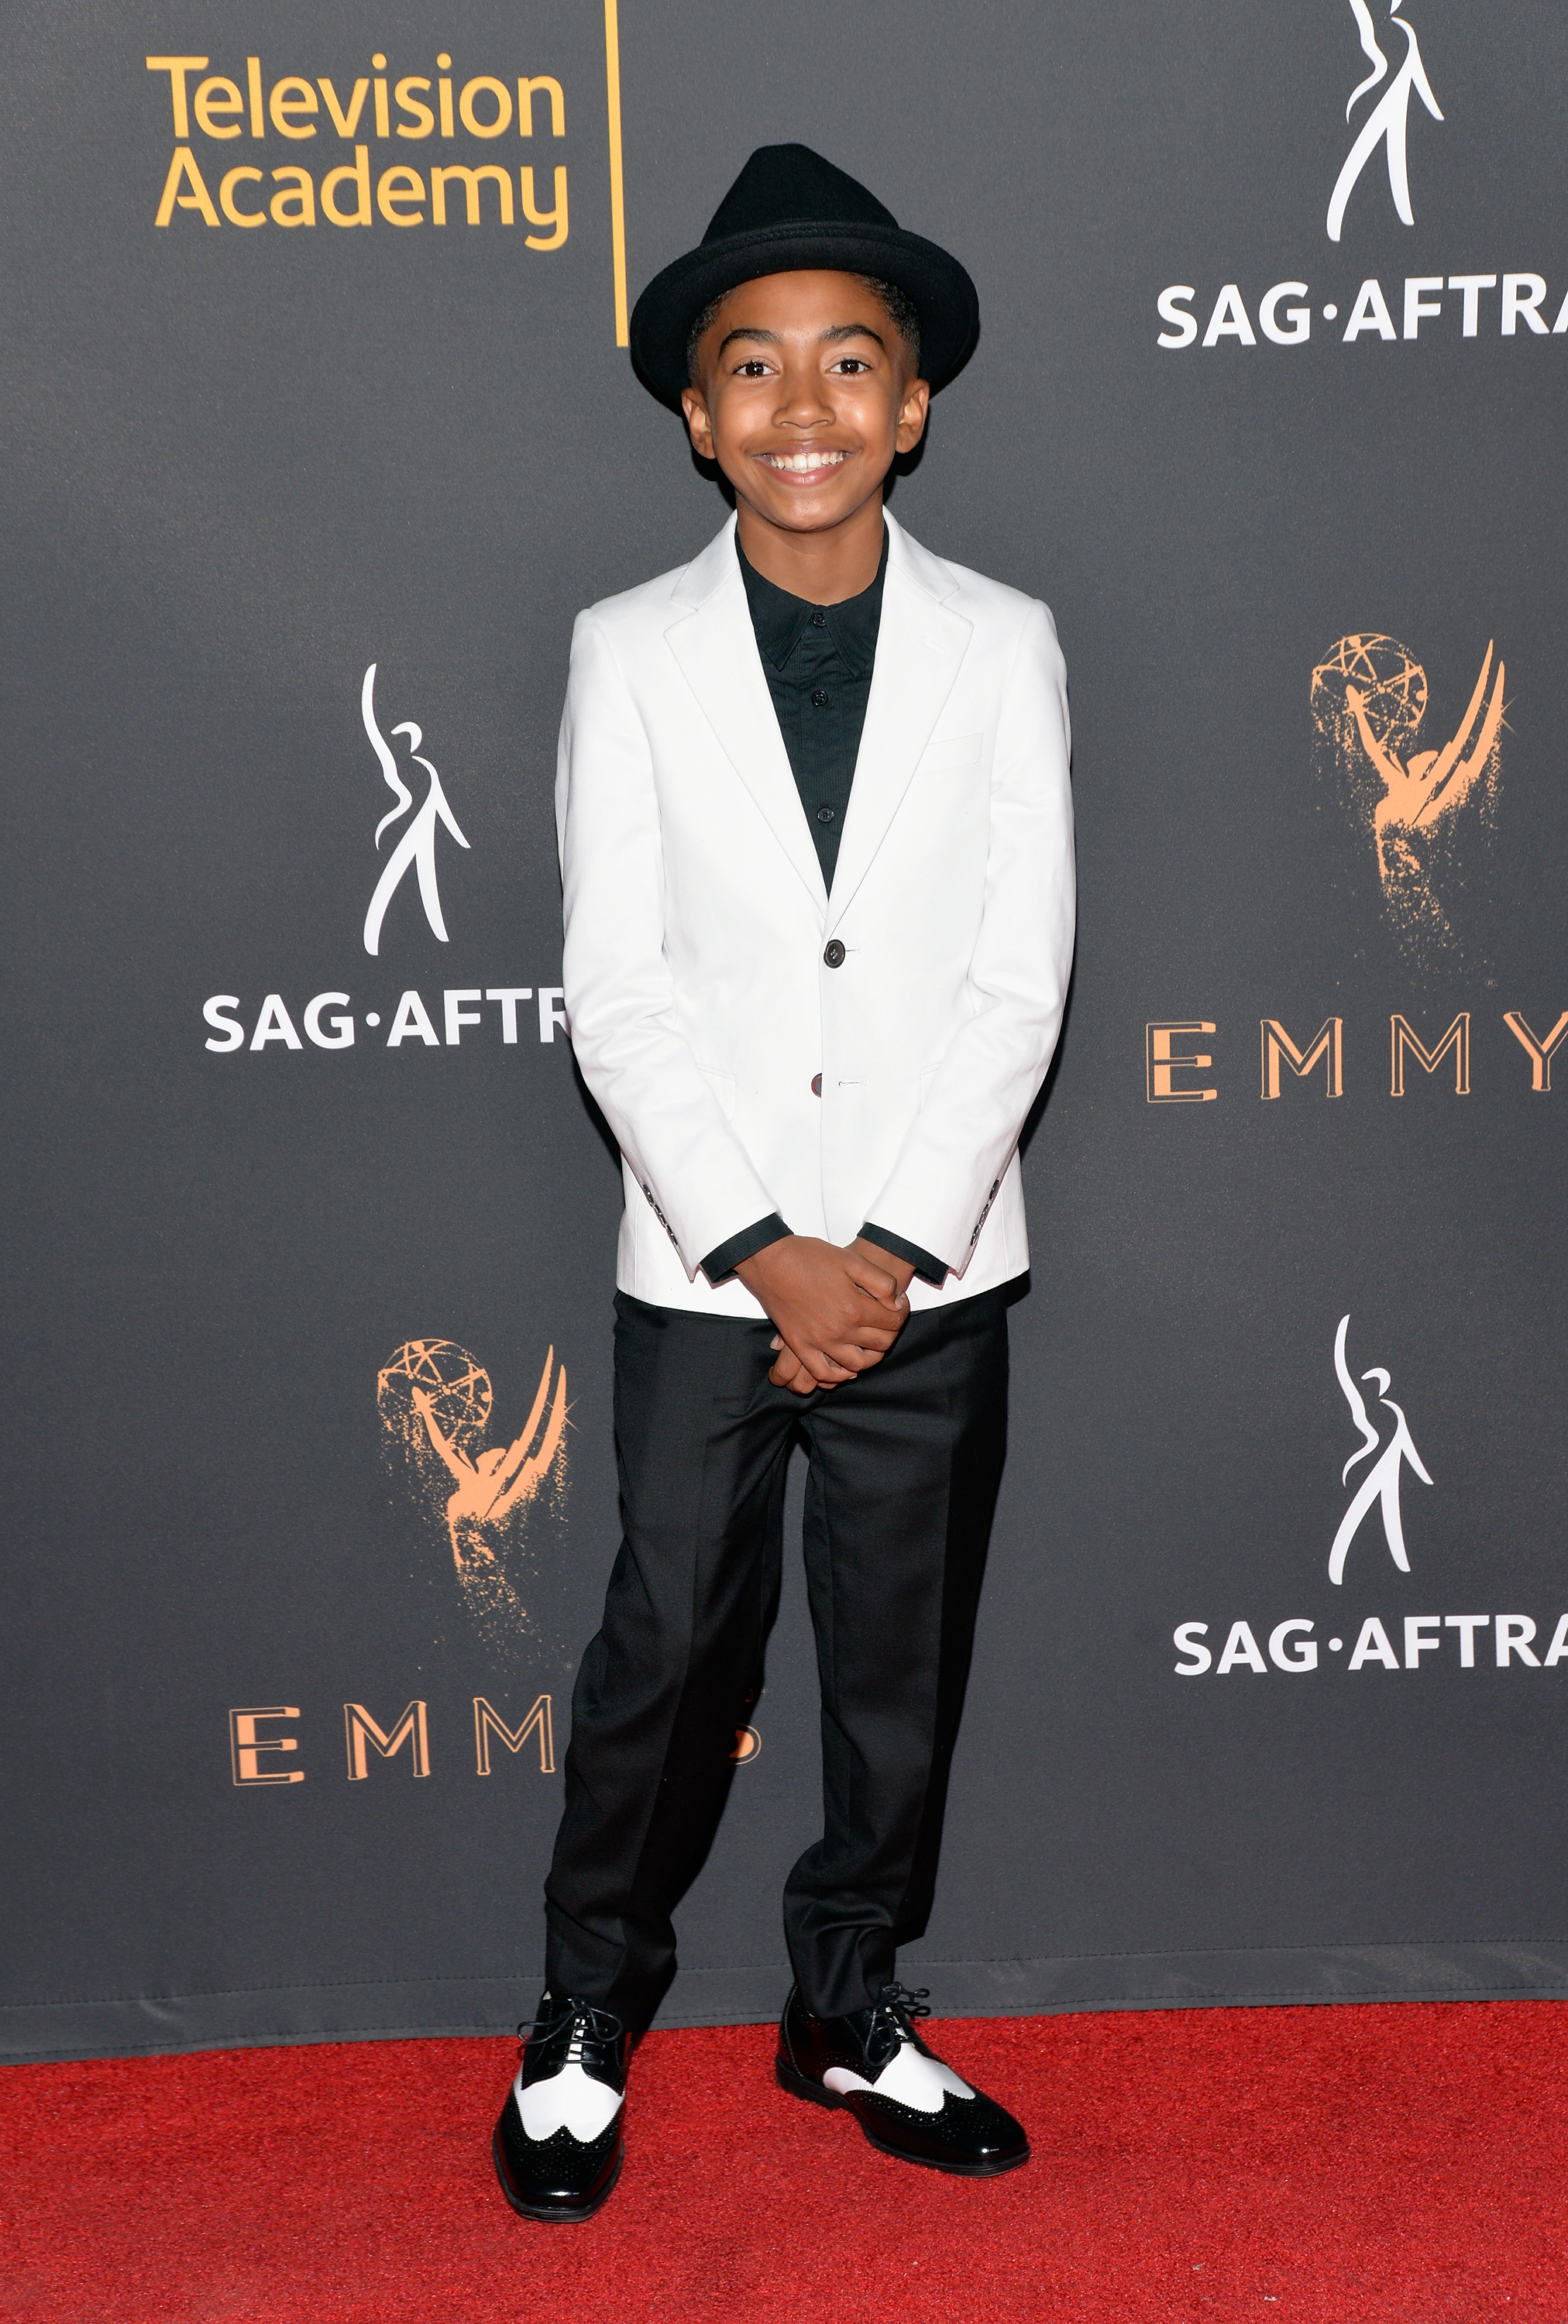 Television Academy And SAG-AFTRA's 5th Annual Dynamic And Diverse Celebration - Arrivals